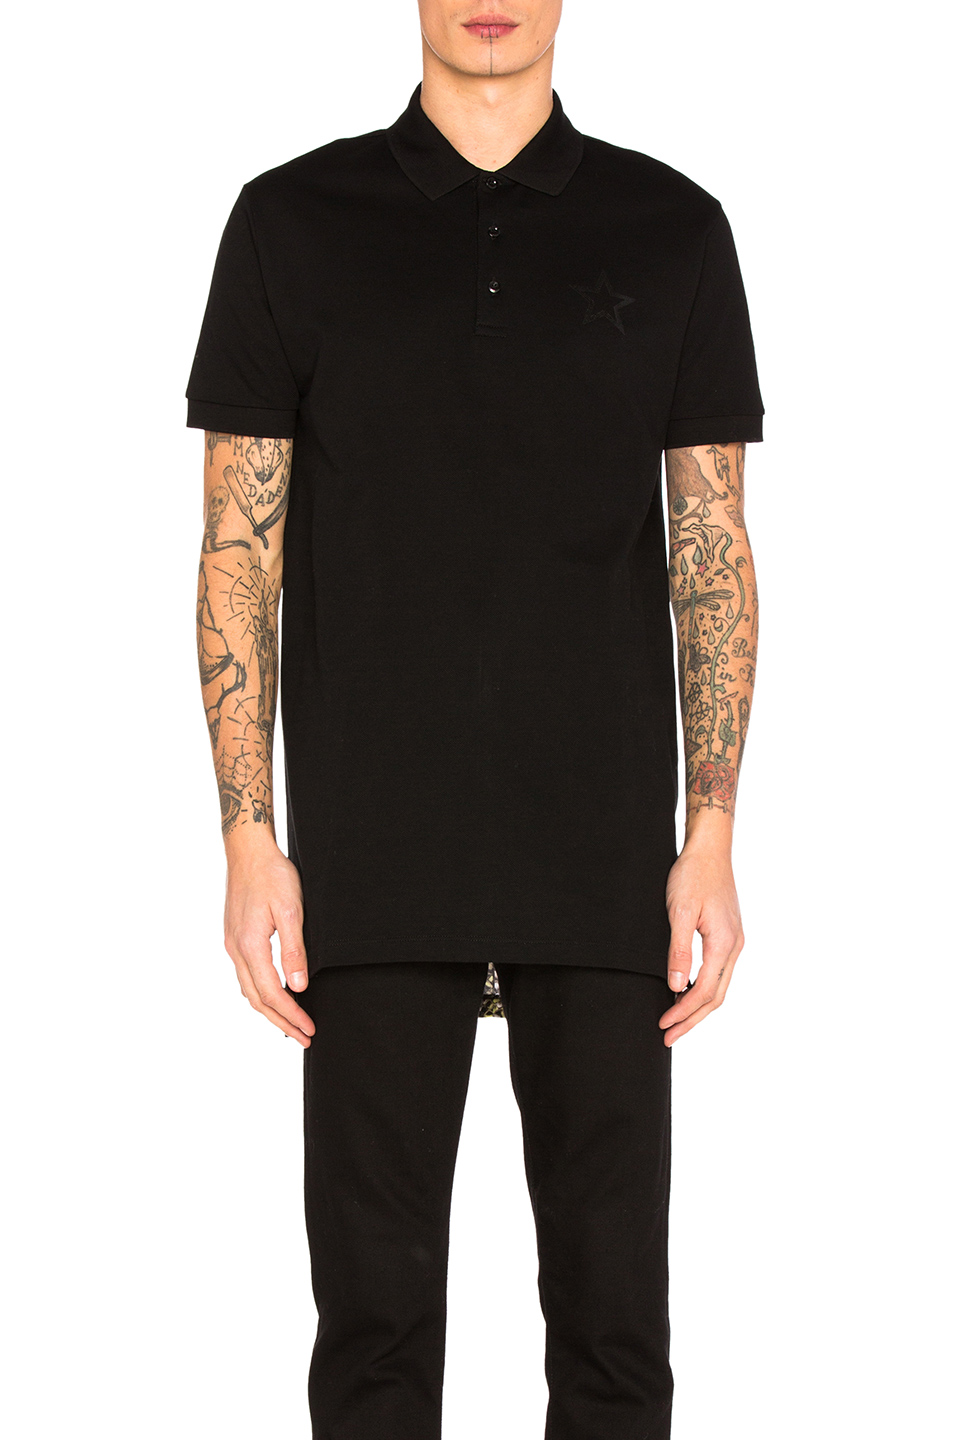 Givenchy Polo Shirt in Black